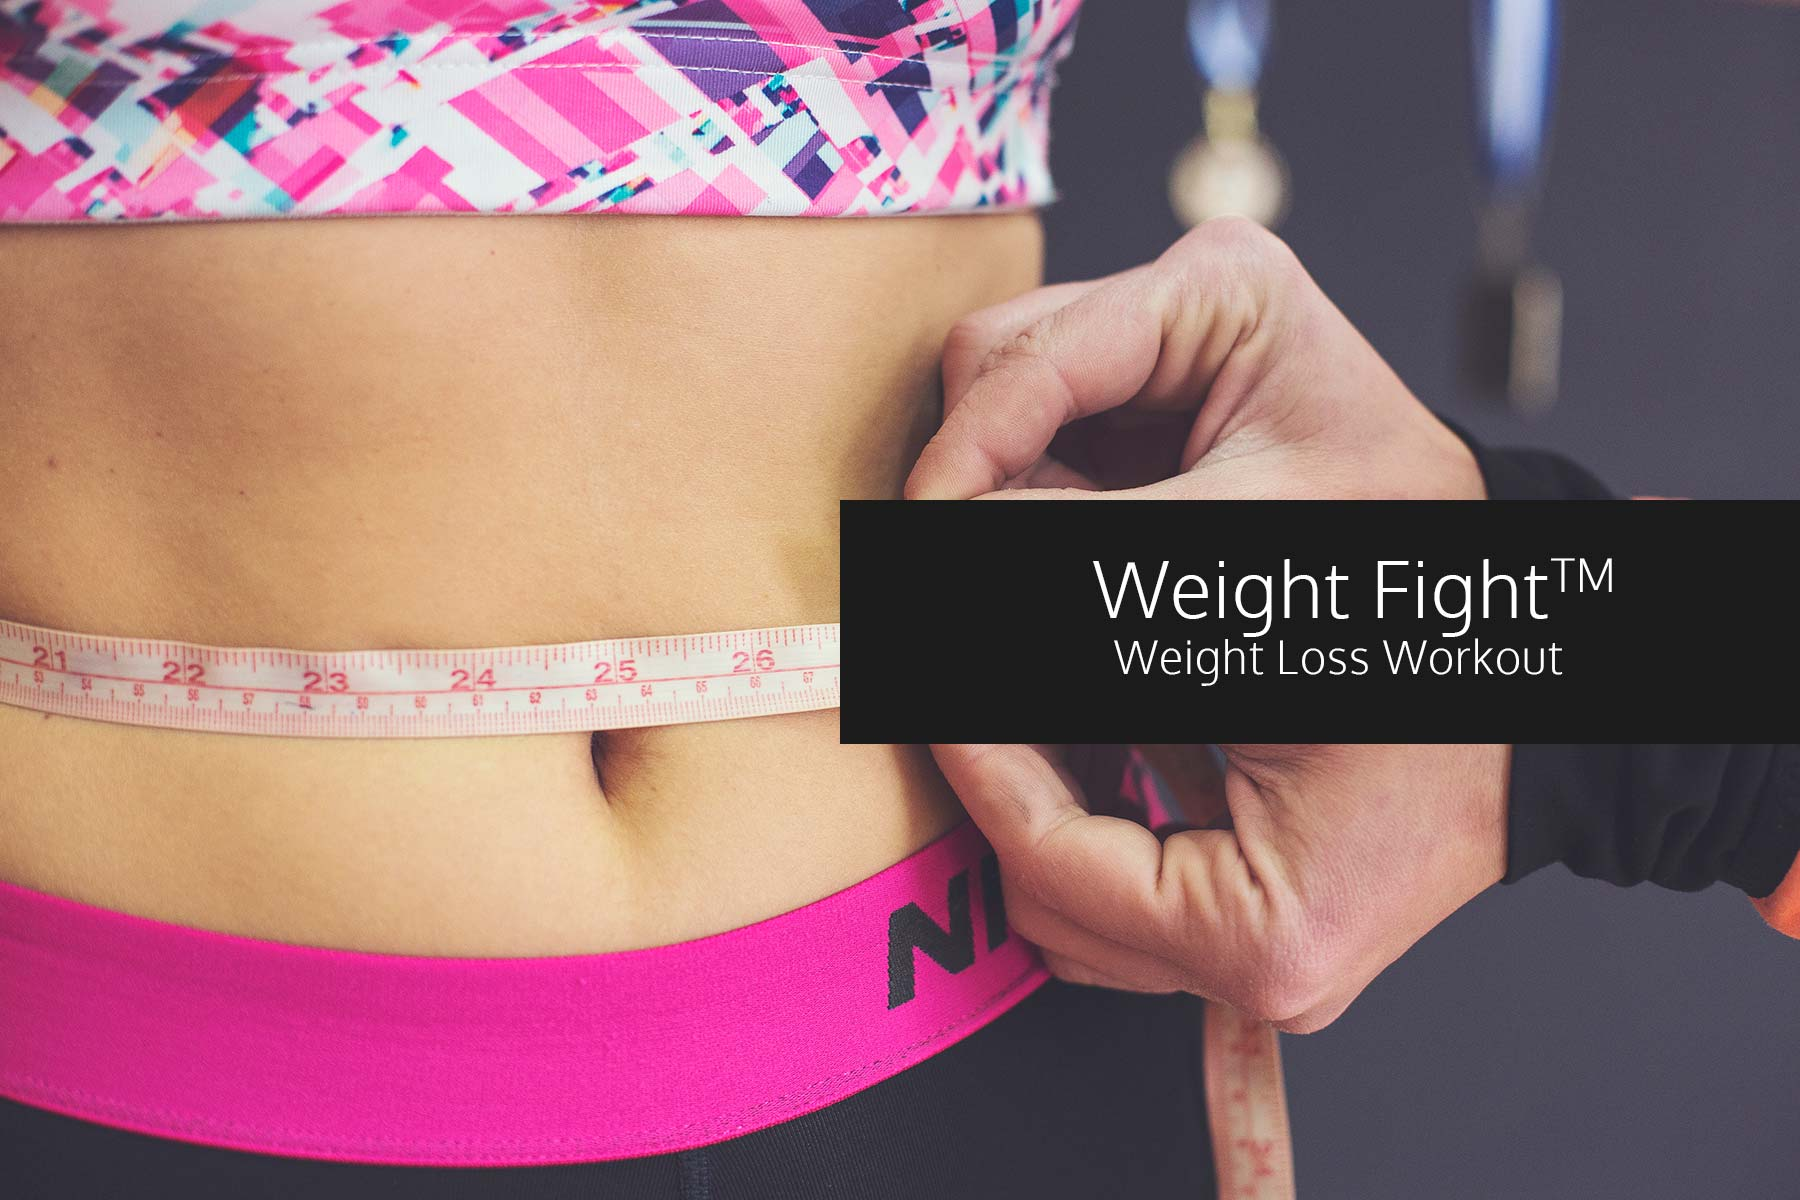 Weight_Fight_Weight_Loss2